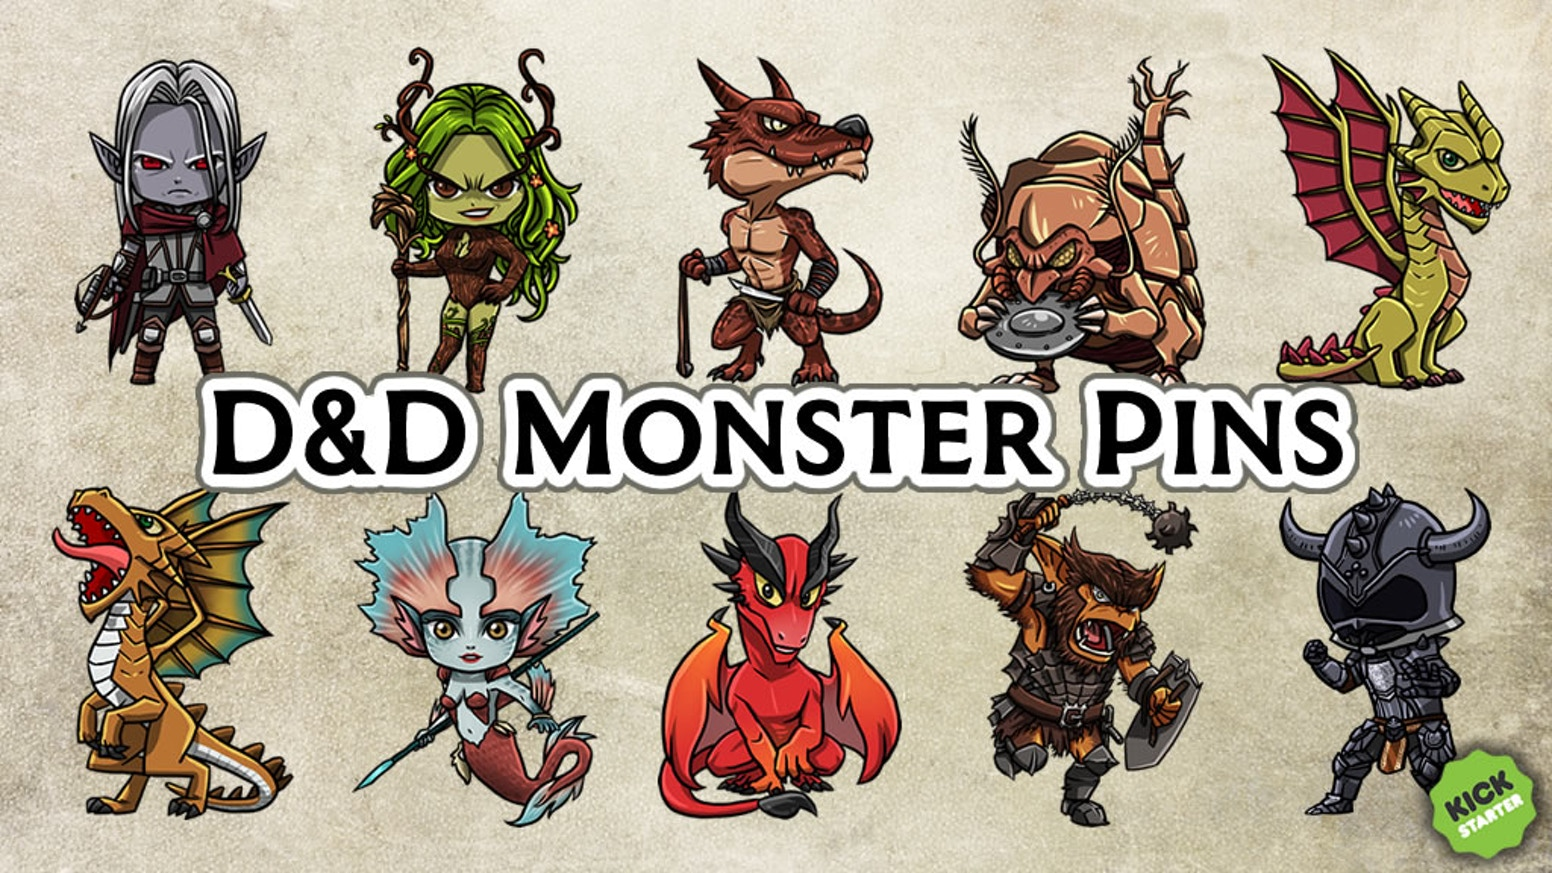 Ten awesome monsters from the world's greatest roleplaying game. Perfect for dice bags, backpacks, jackets, or wherever!